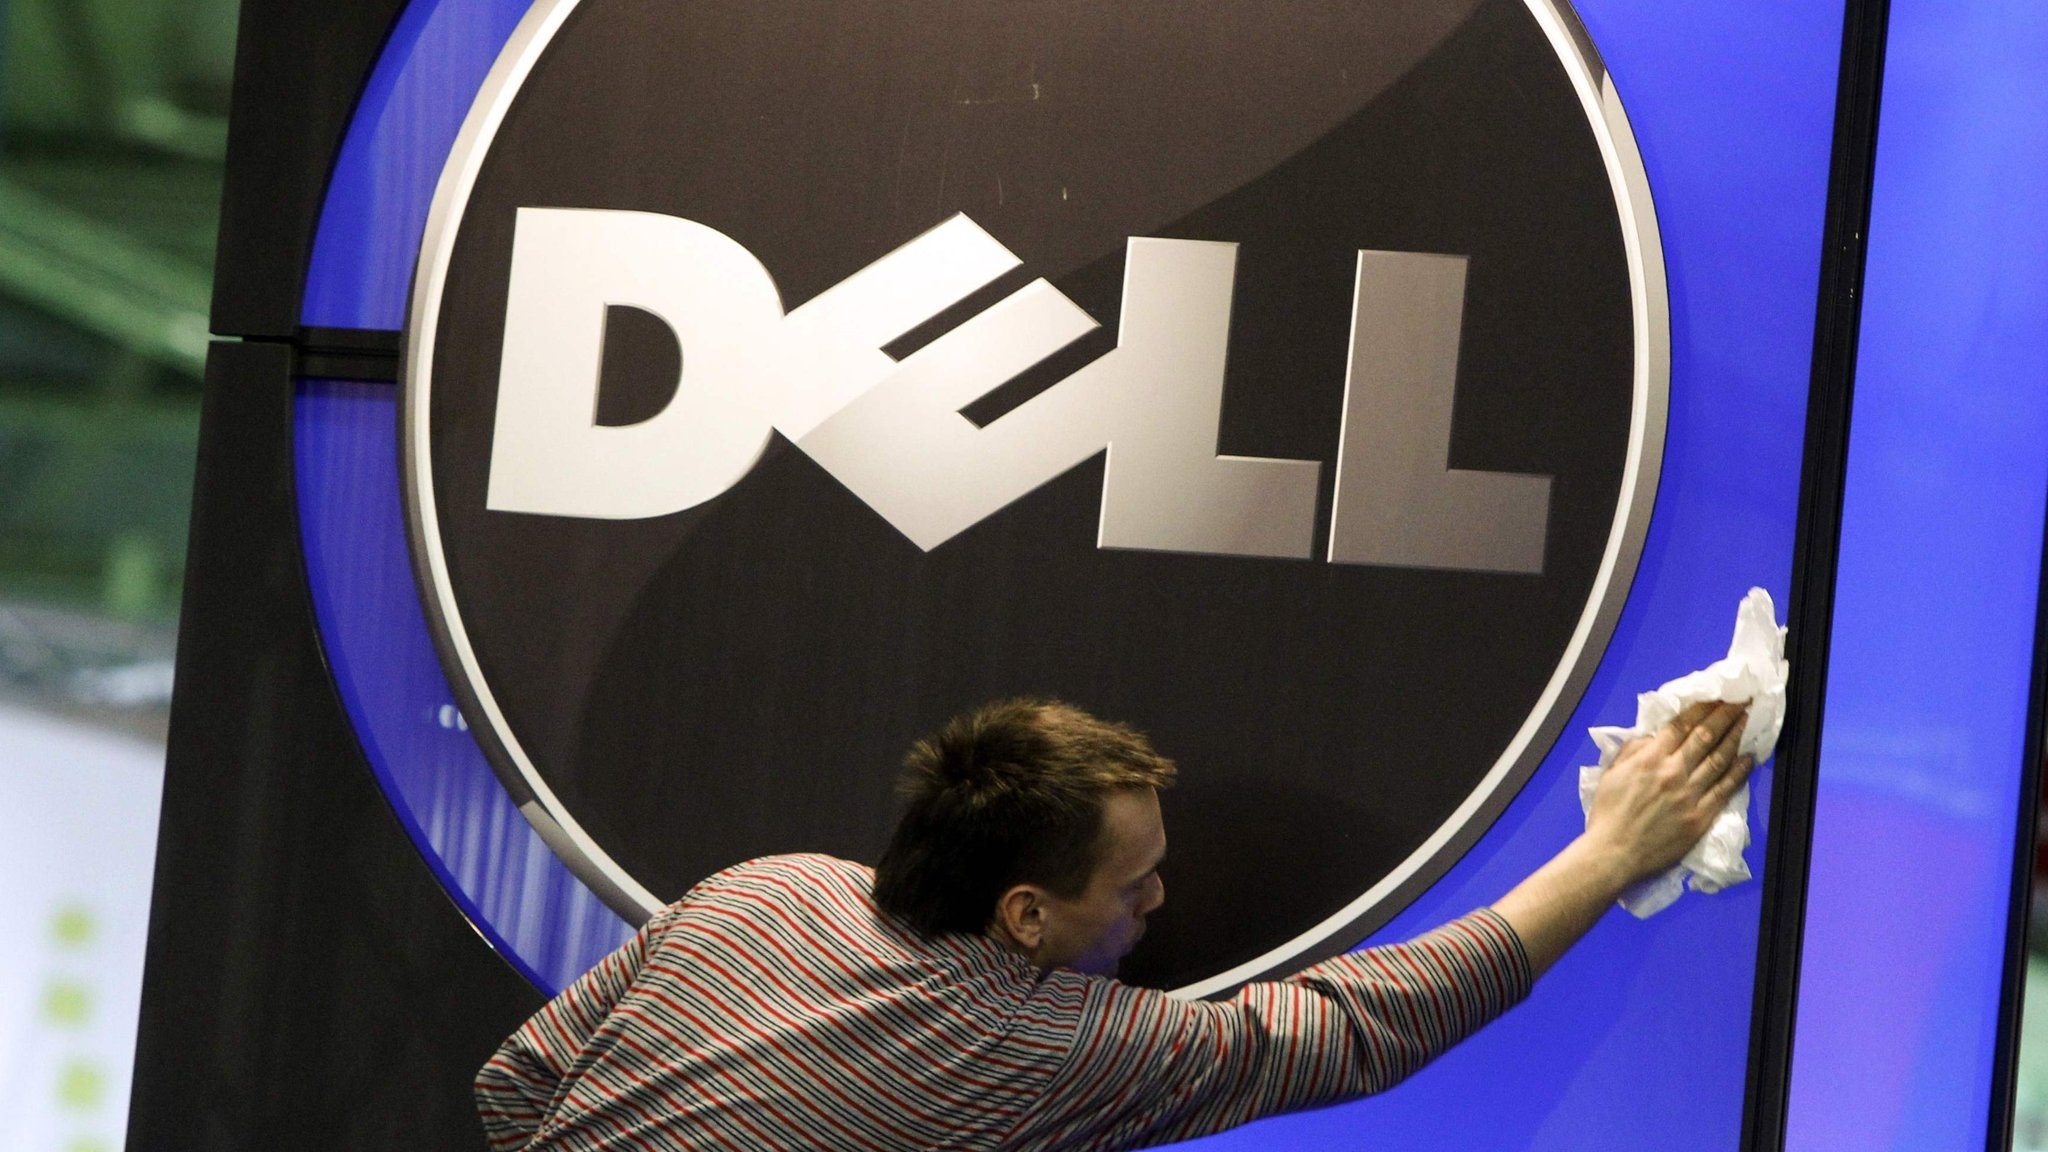 Dell considers return to stock market